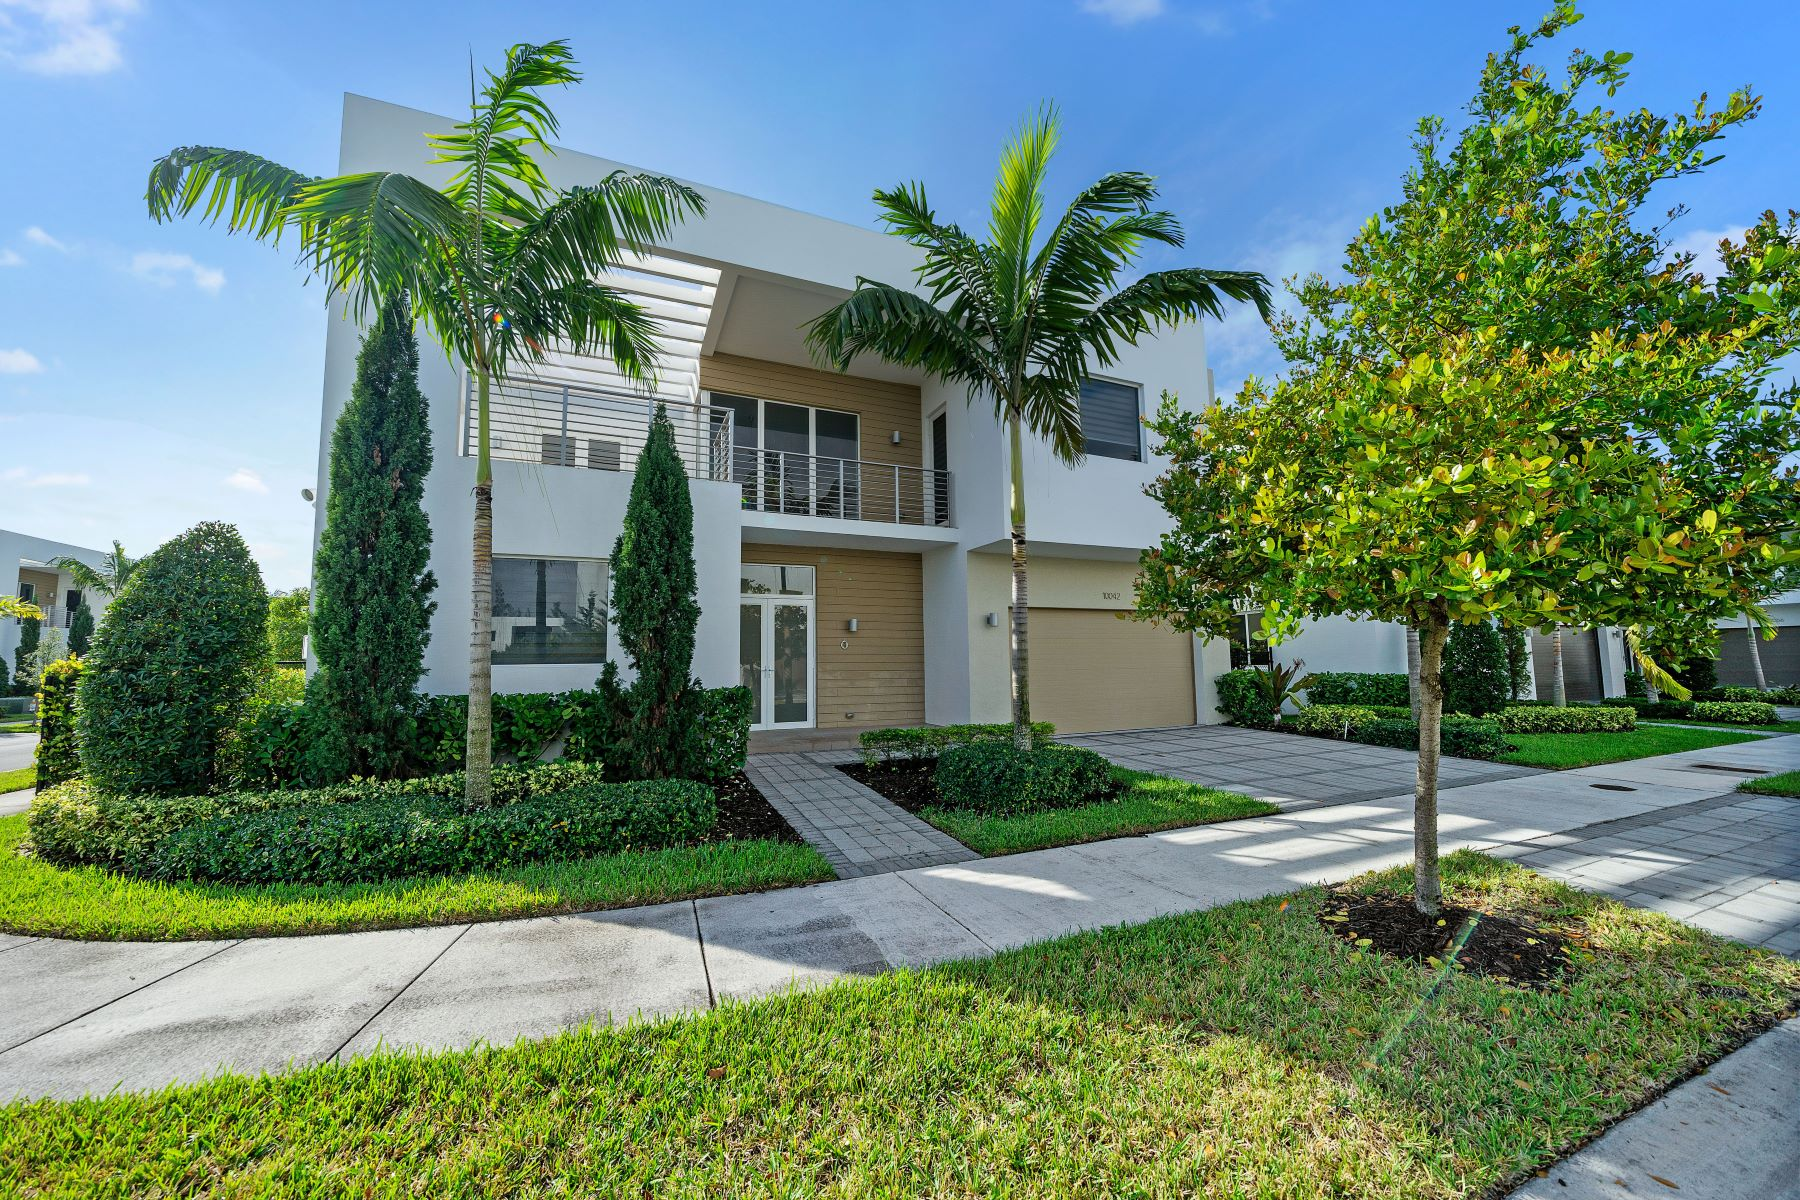 Single Family Homes for Sale at 10042 Nw 76th Ter Doral, Florida 33178 United States